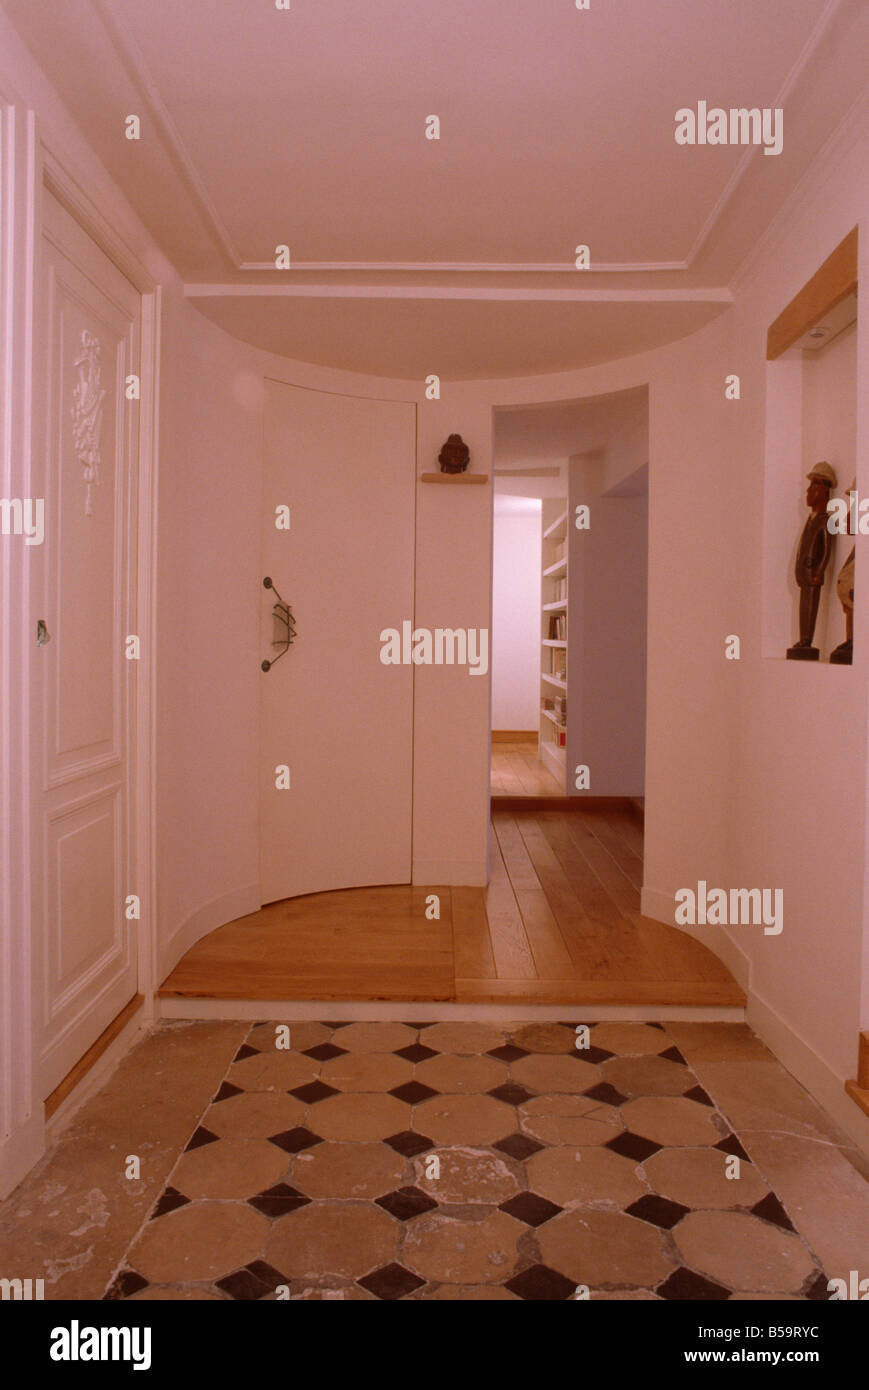 Terracotta floor tiles and wooden flooring in modern white hall with ...